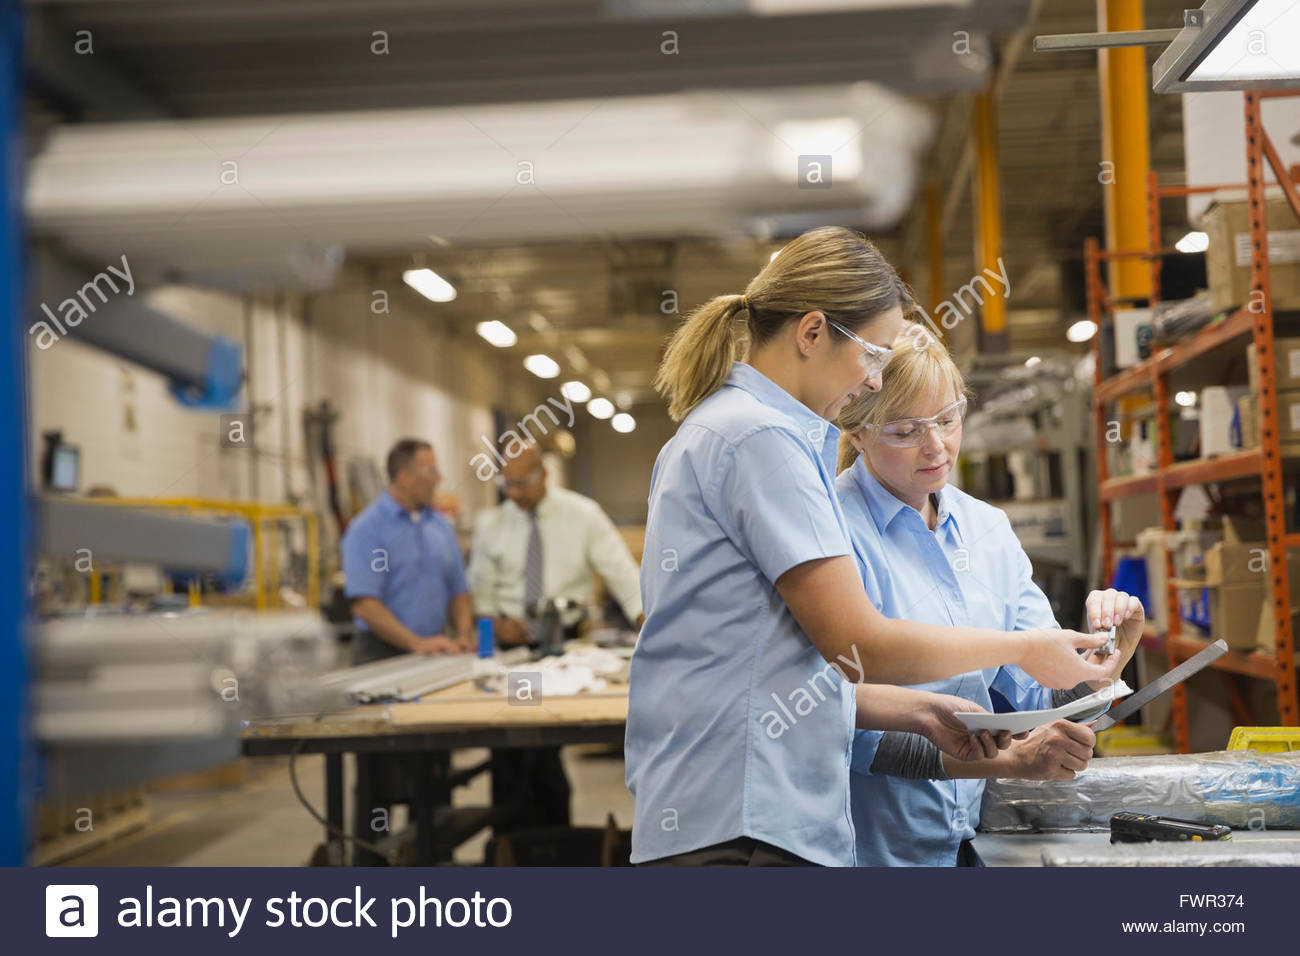 Female workers inspecting parts in manufacturing plant - Stock Image